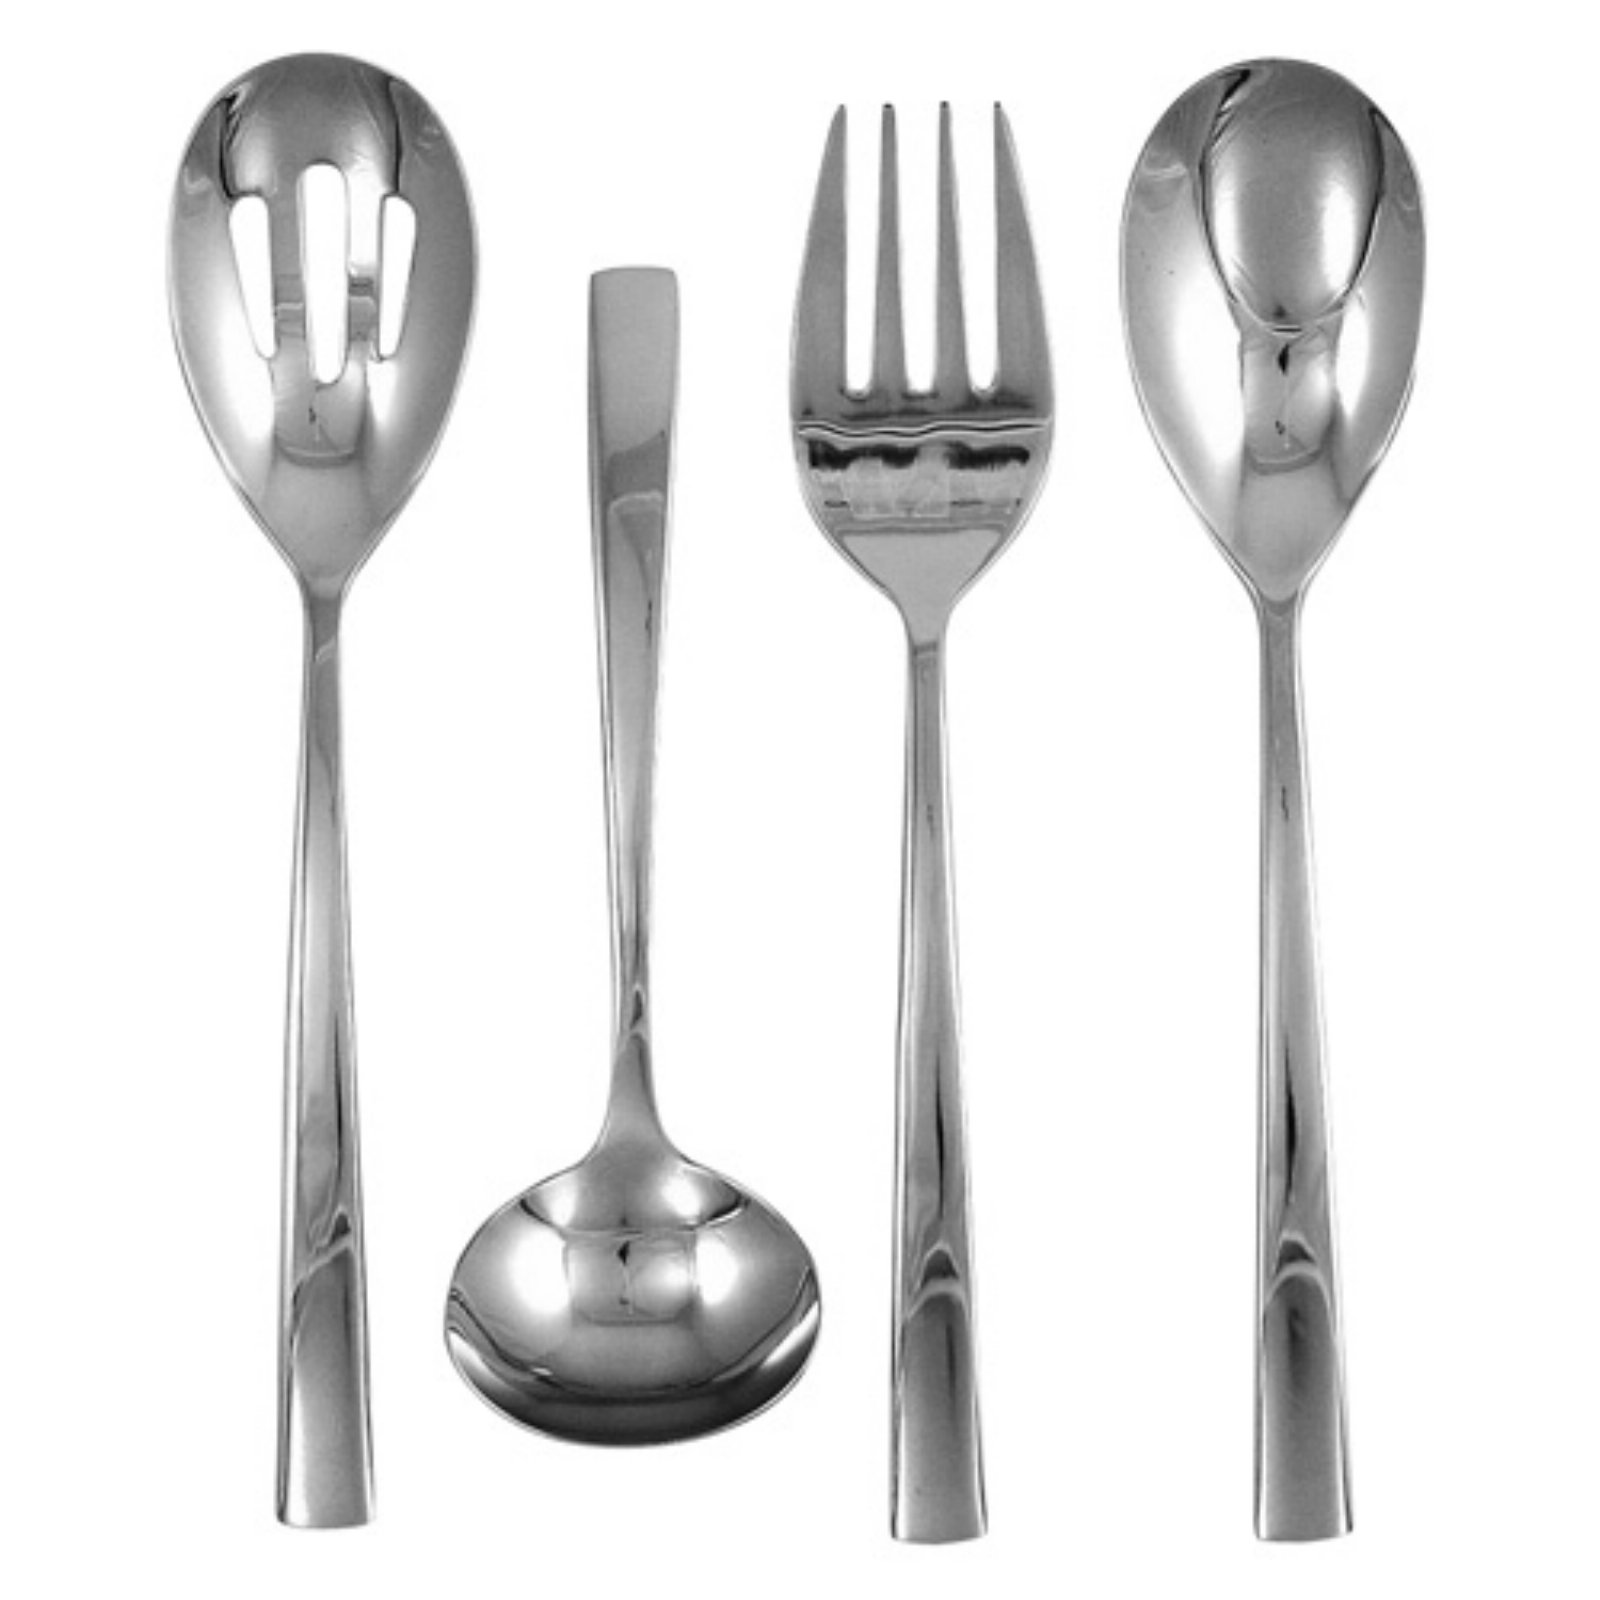 Ginkgo President Stainless Mirror Finish Flatware Hostess Set - Set of 4